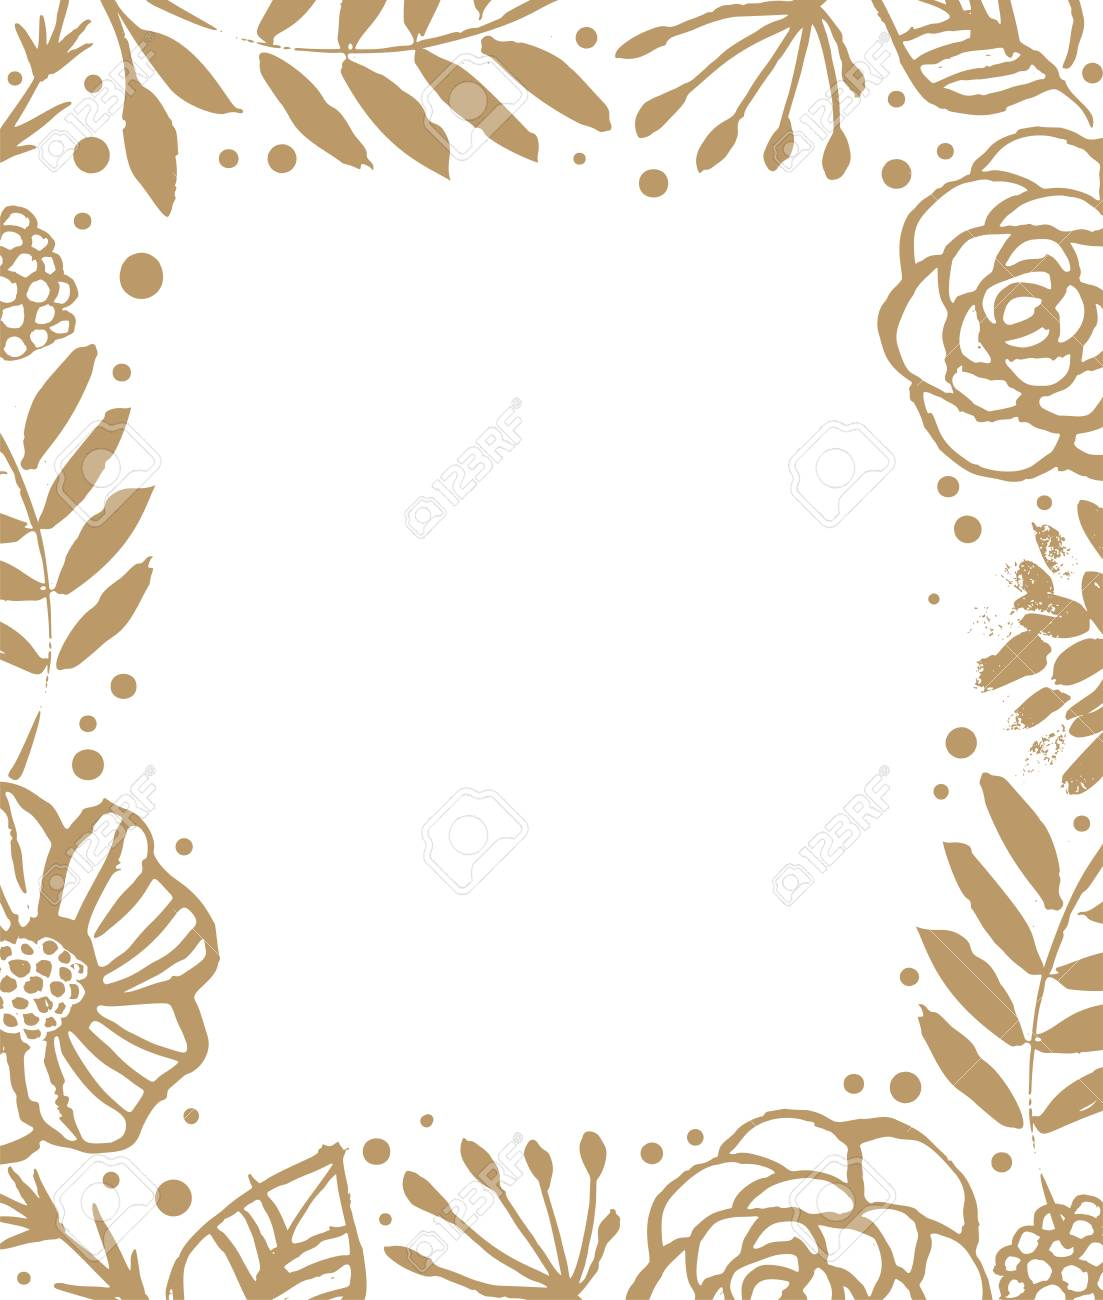 Flower Frame Template For Wedding Invitation And Greeting Card ...